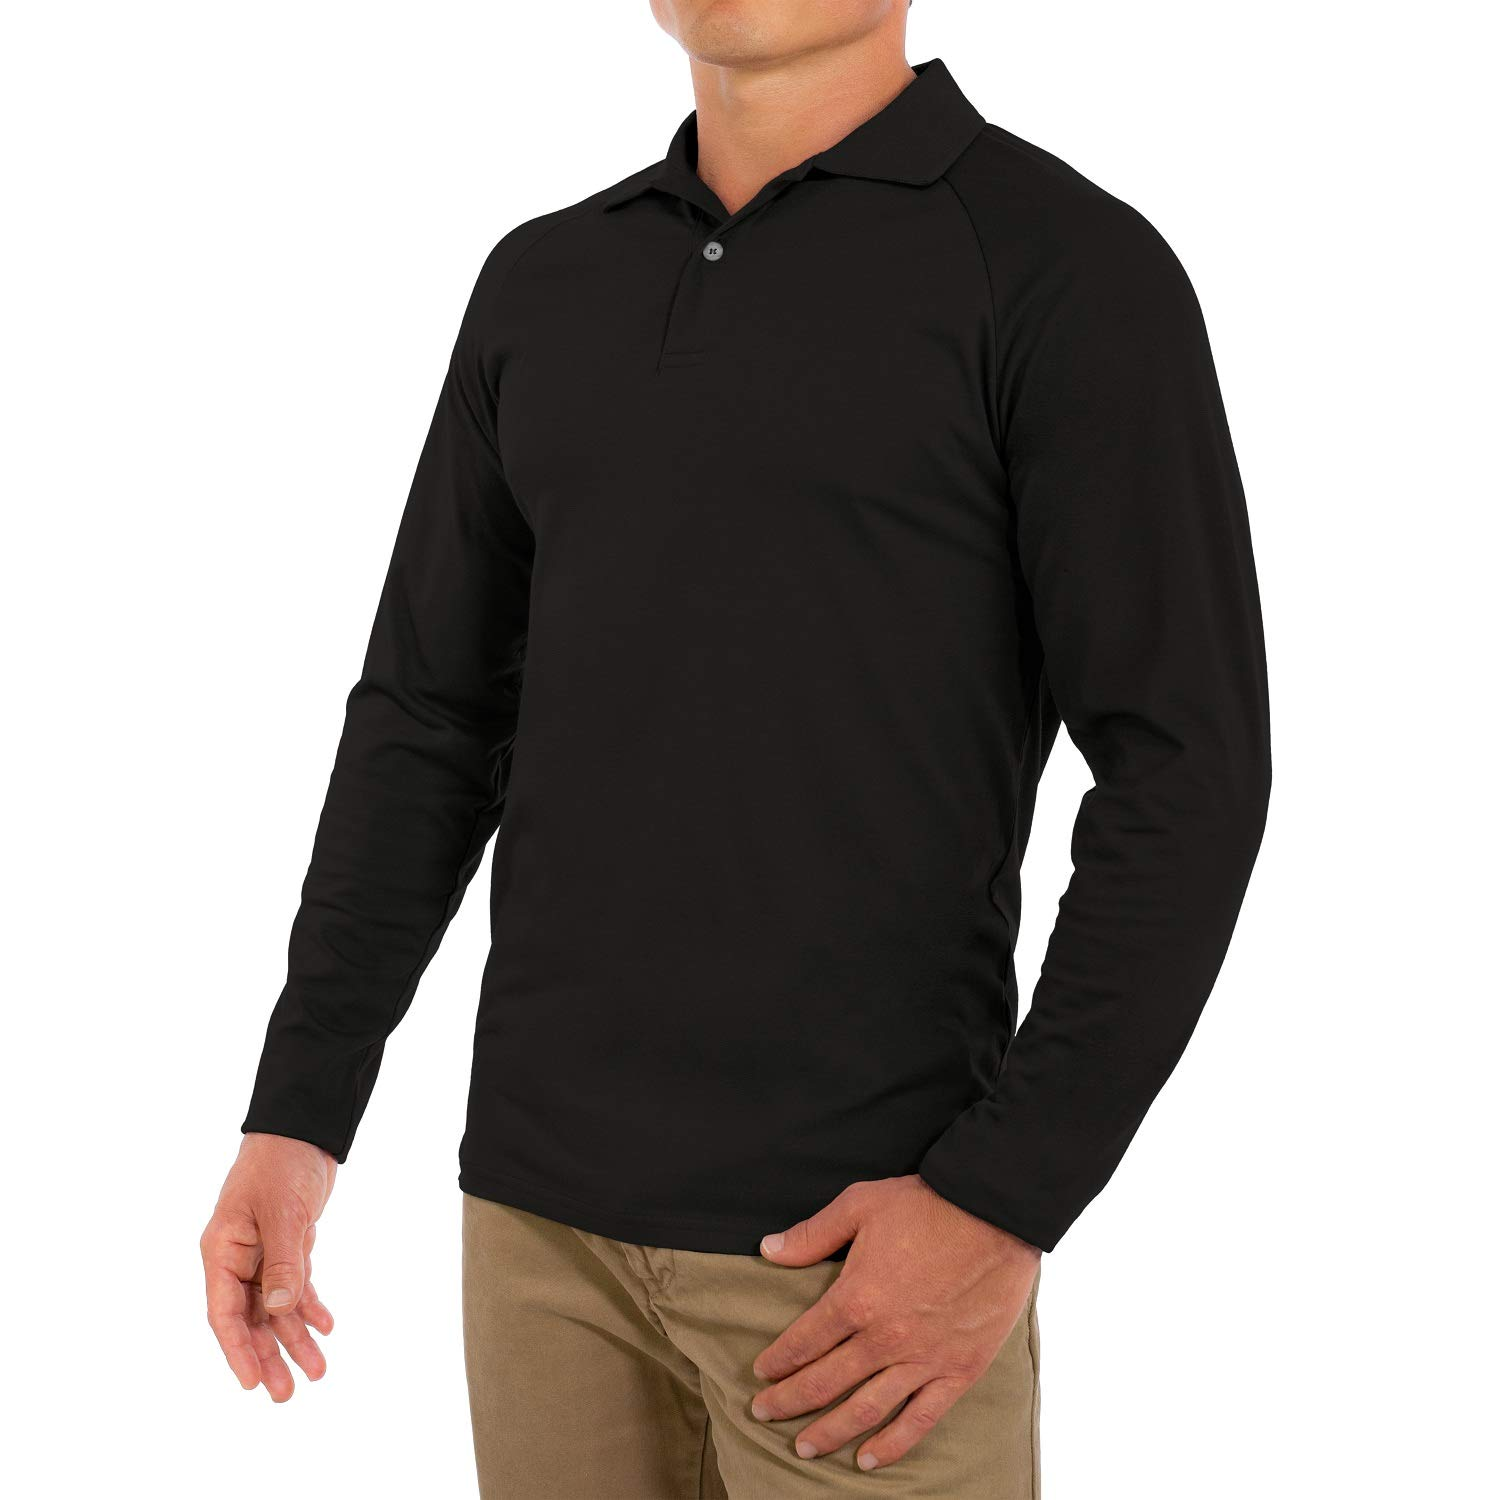 caa902803ce Amazon.com  Comfortably Collared Men s Perfect Slim Fit Long Sleeve Soft  Fitted Polo Shirt  Clothing